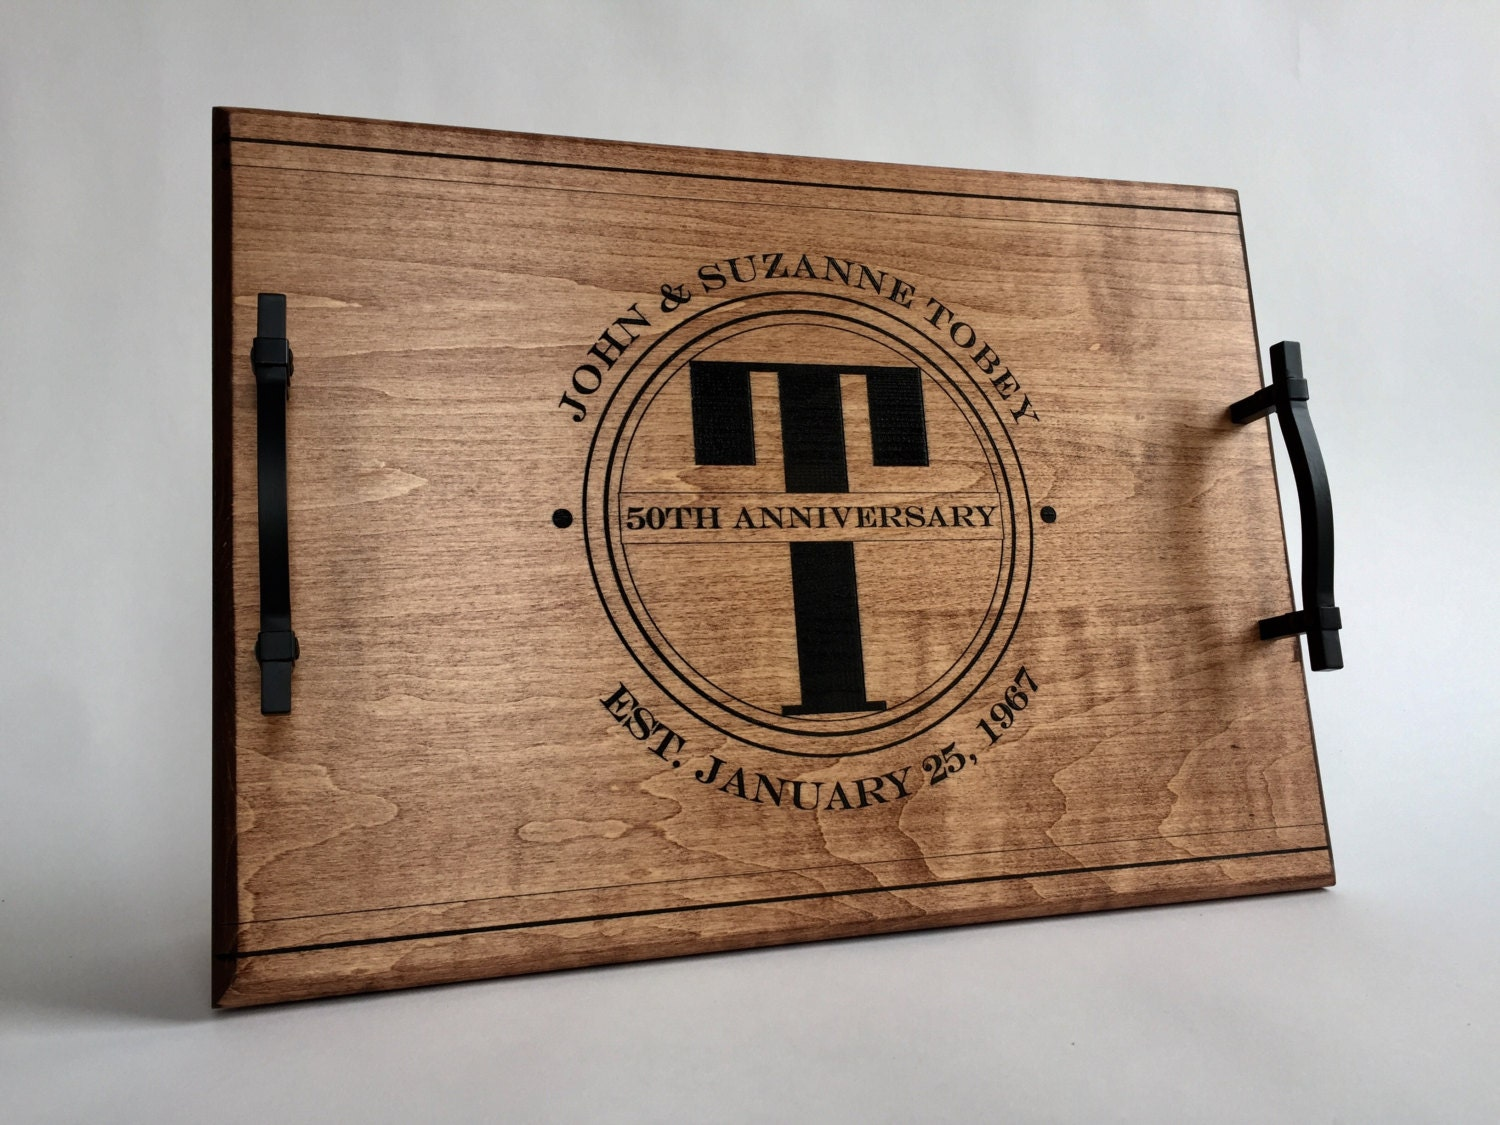 6 Wedding Anniversary Gift: 50th Wedding Anniversary Personalized Serving Tray Engraved